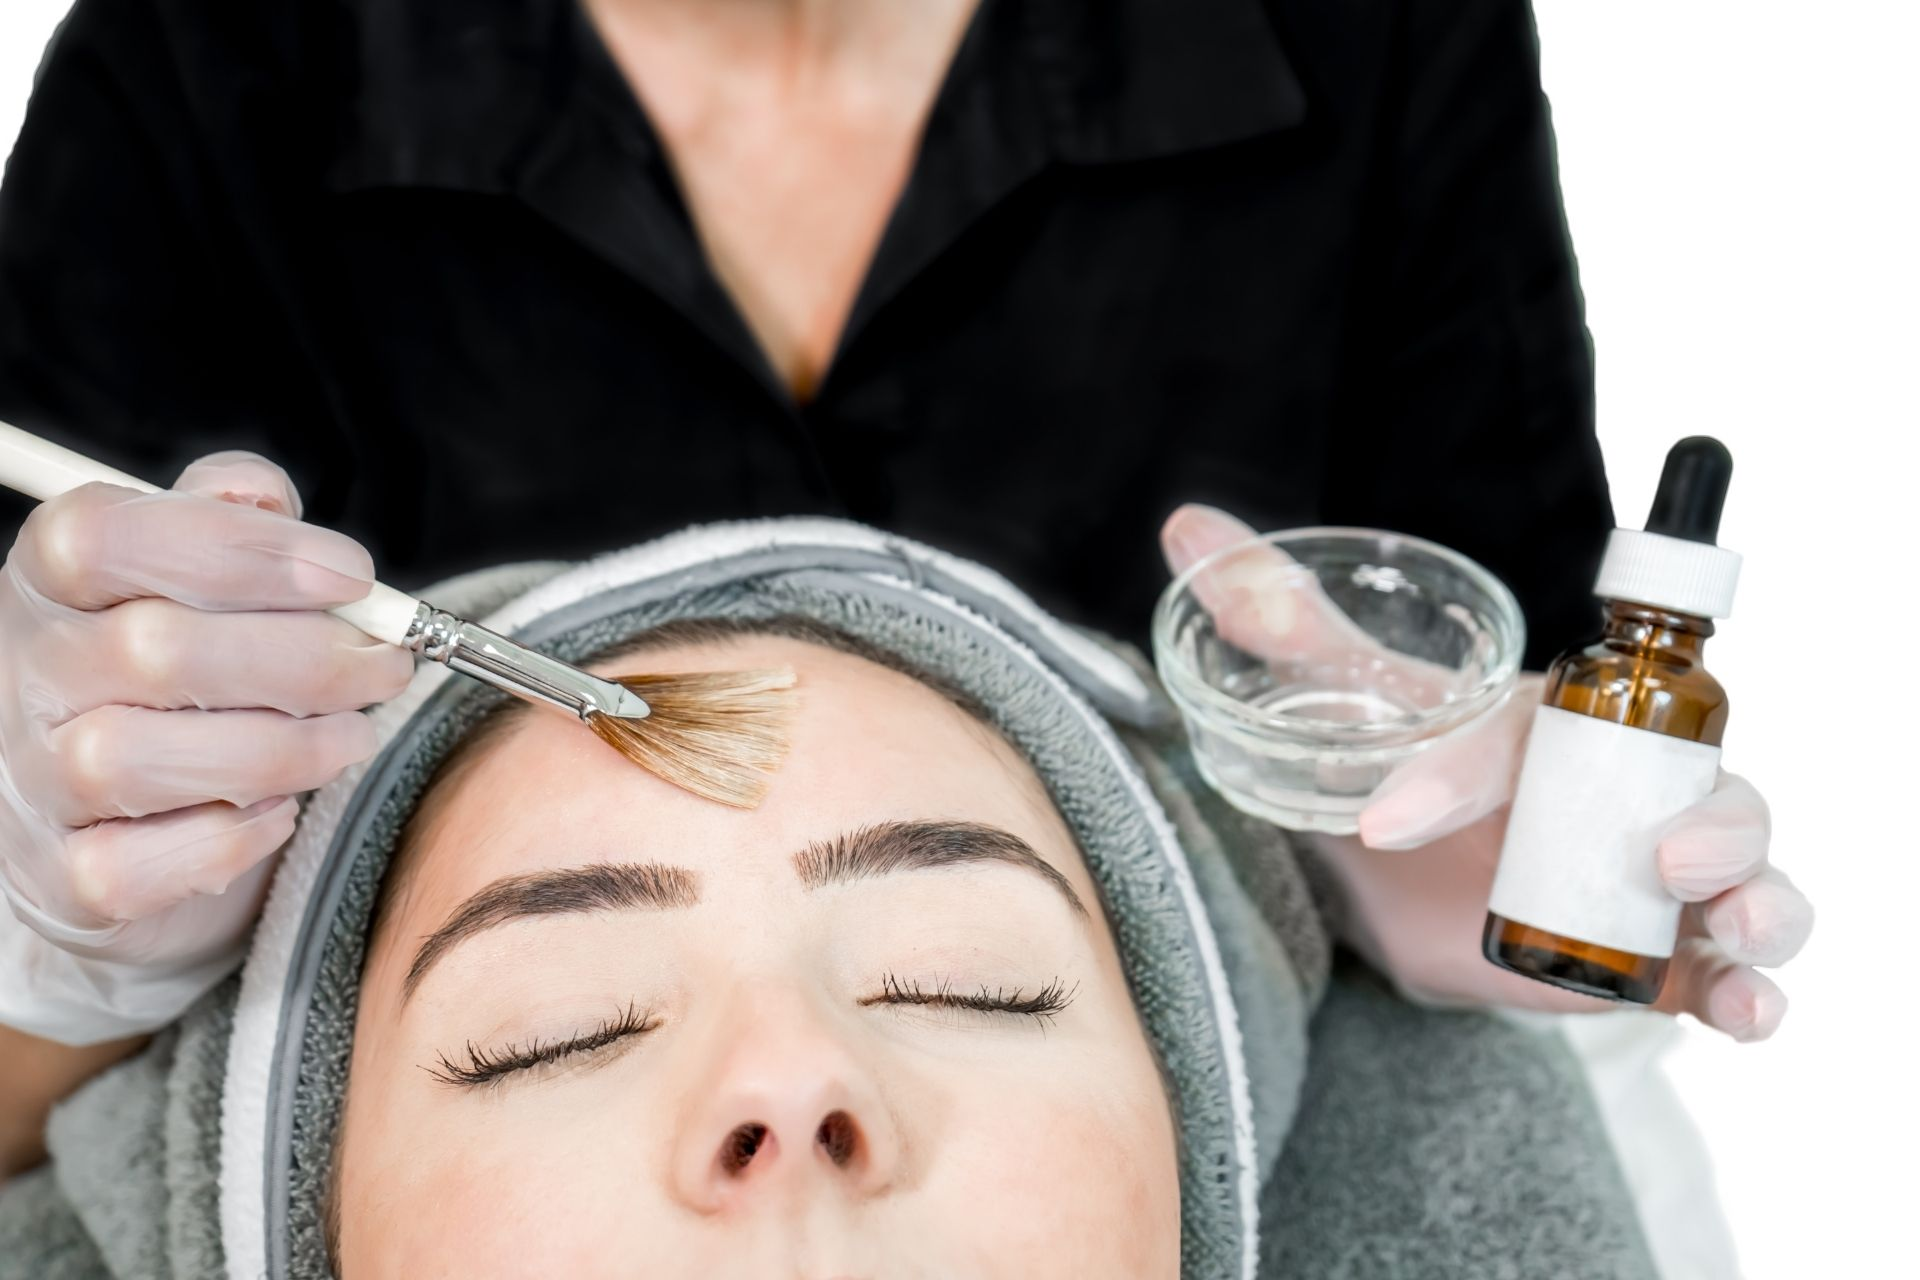 A person getting a chemical peel